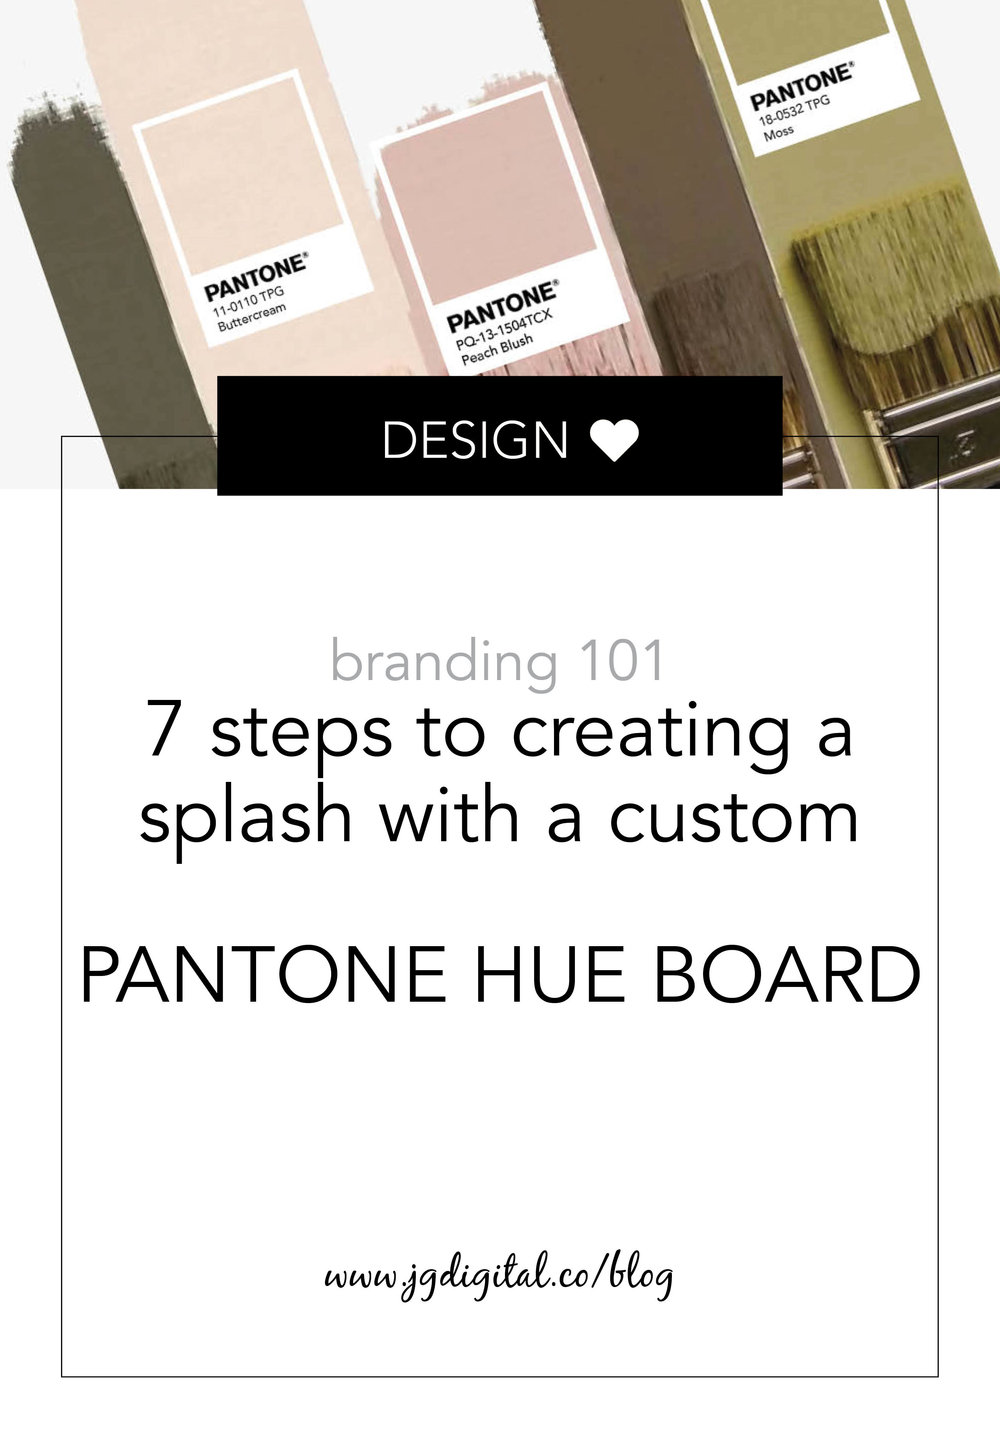 Learn How To Create Your Own Pantone Pop in 7 Simple Steps plus a FREE template by jgdigital.co